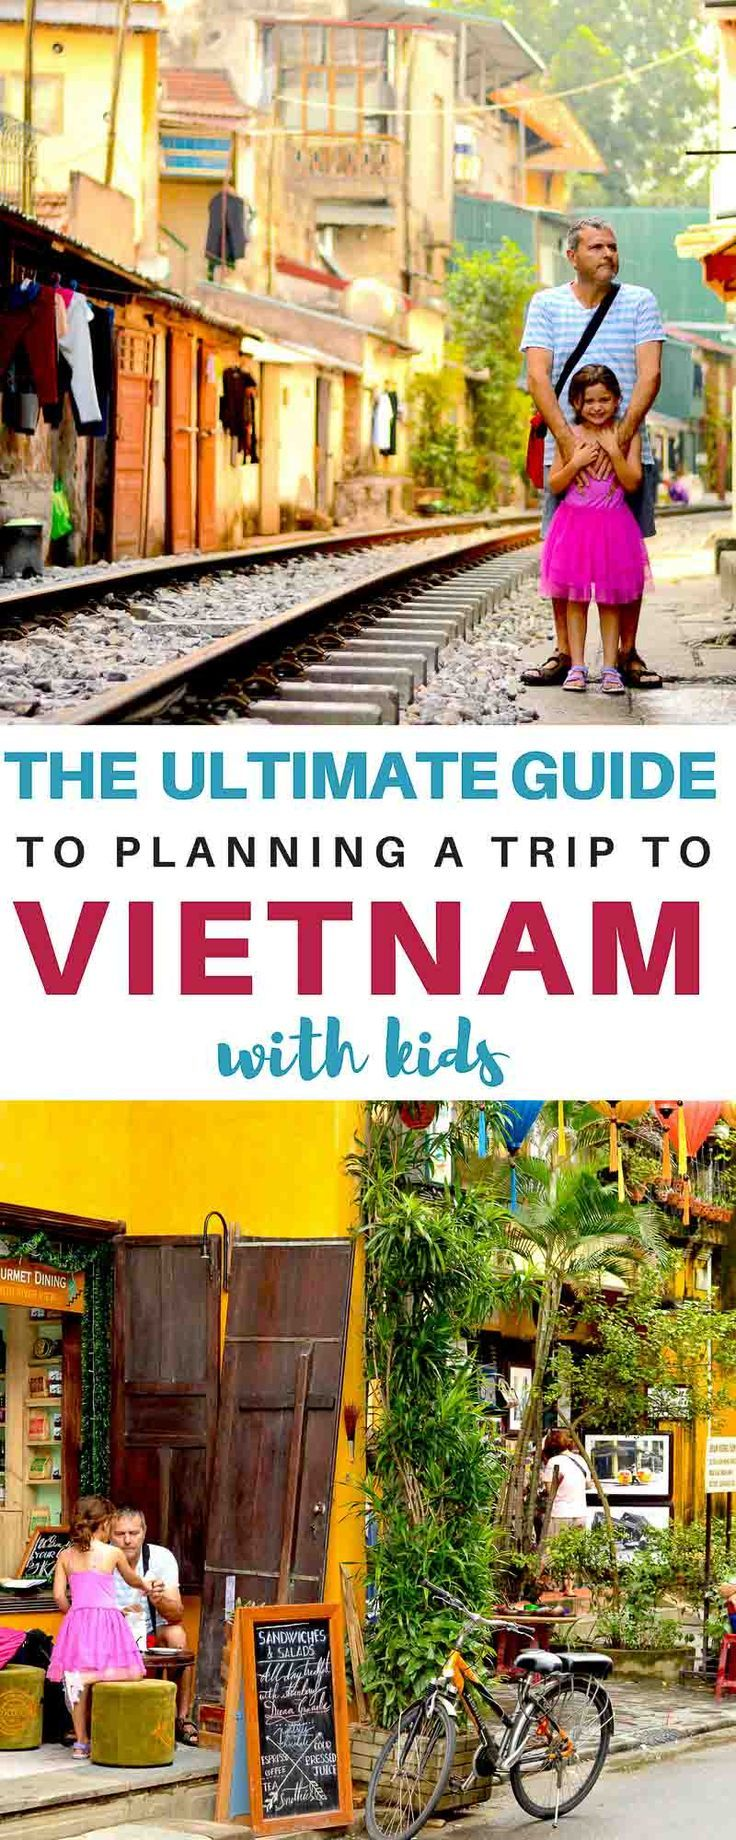 Family friendly itineraries, must see destinations, best hotels, budget guides & heaps more. Vietnam Travel |Vietnam Guide | Vietnam Itinerary | Vietnam Hanoi | Vietnam Ho Chi Minh City | Vietnam Ha Long Bay | Vietnam Hoi An | Vietnam Things to do | Vietnam Travel Kids | Vietnam Destinations | Vietnam Budget | Vietnam Islands | Vietnam Mekong Delta | Vietnam Holidays | Vietnam Children | Vietnam Blog | Vietnam Phu Quoc | Vietnam Prices | Vietnam Hotels | Vietnam with kids